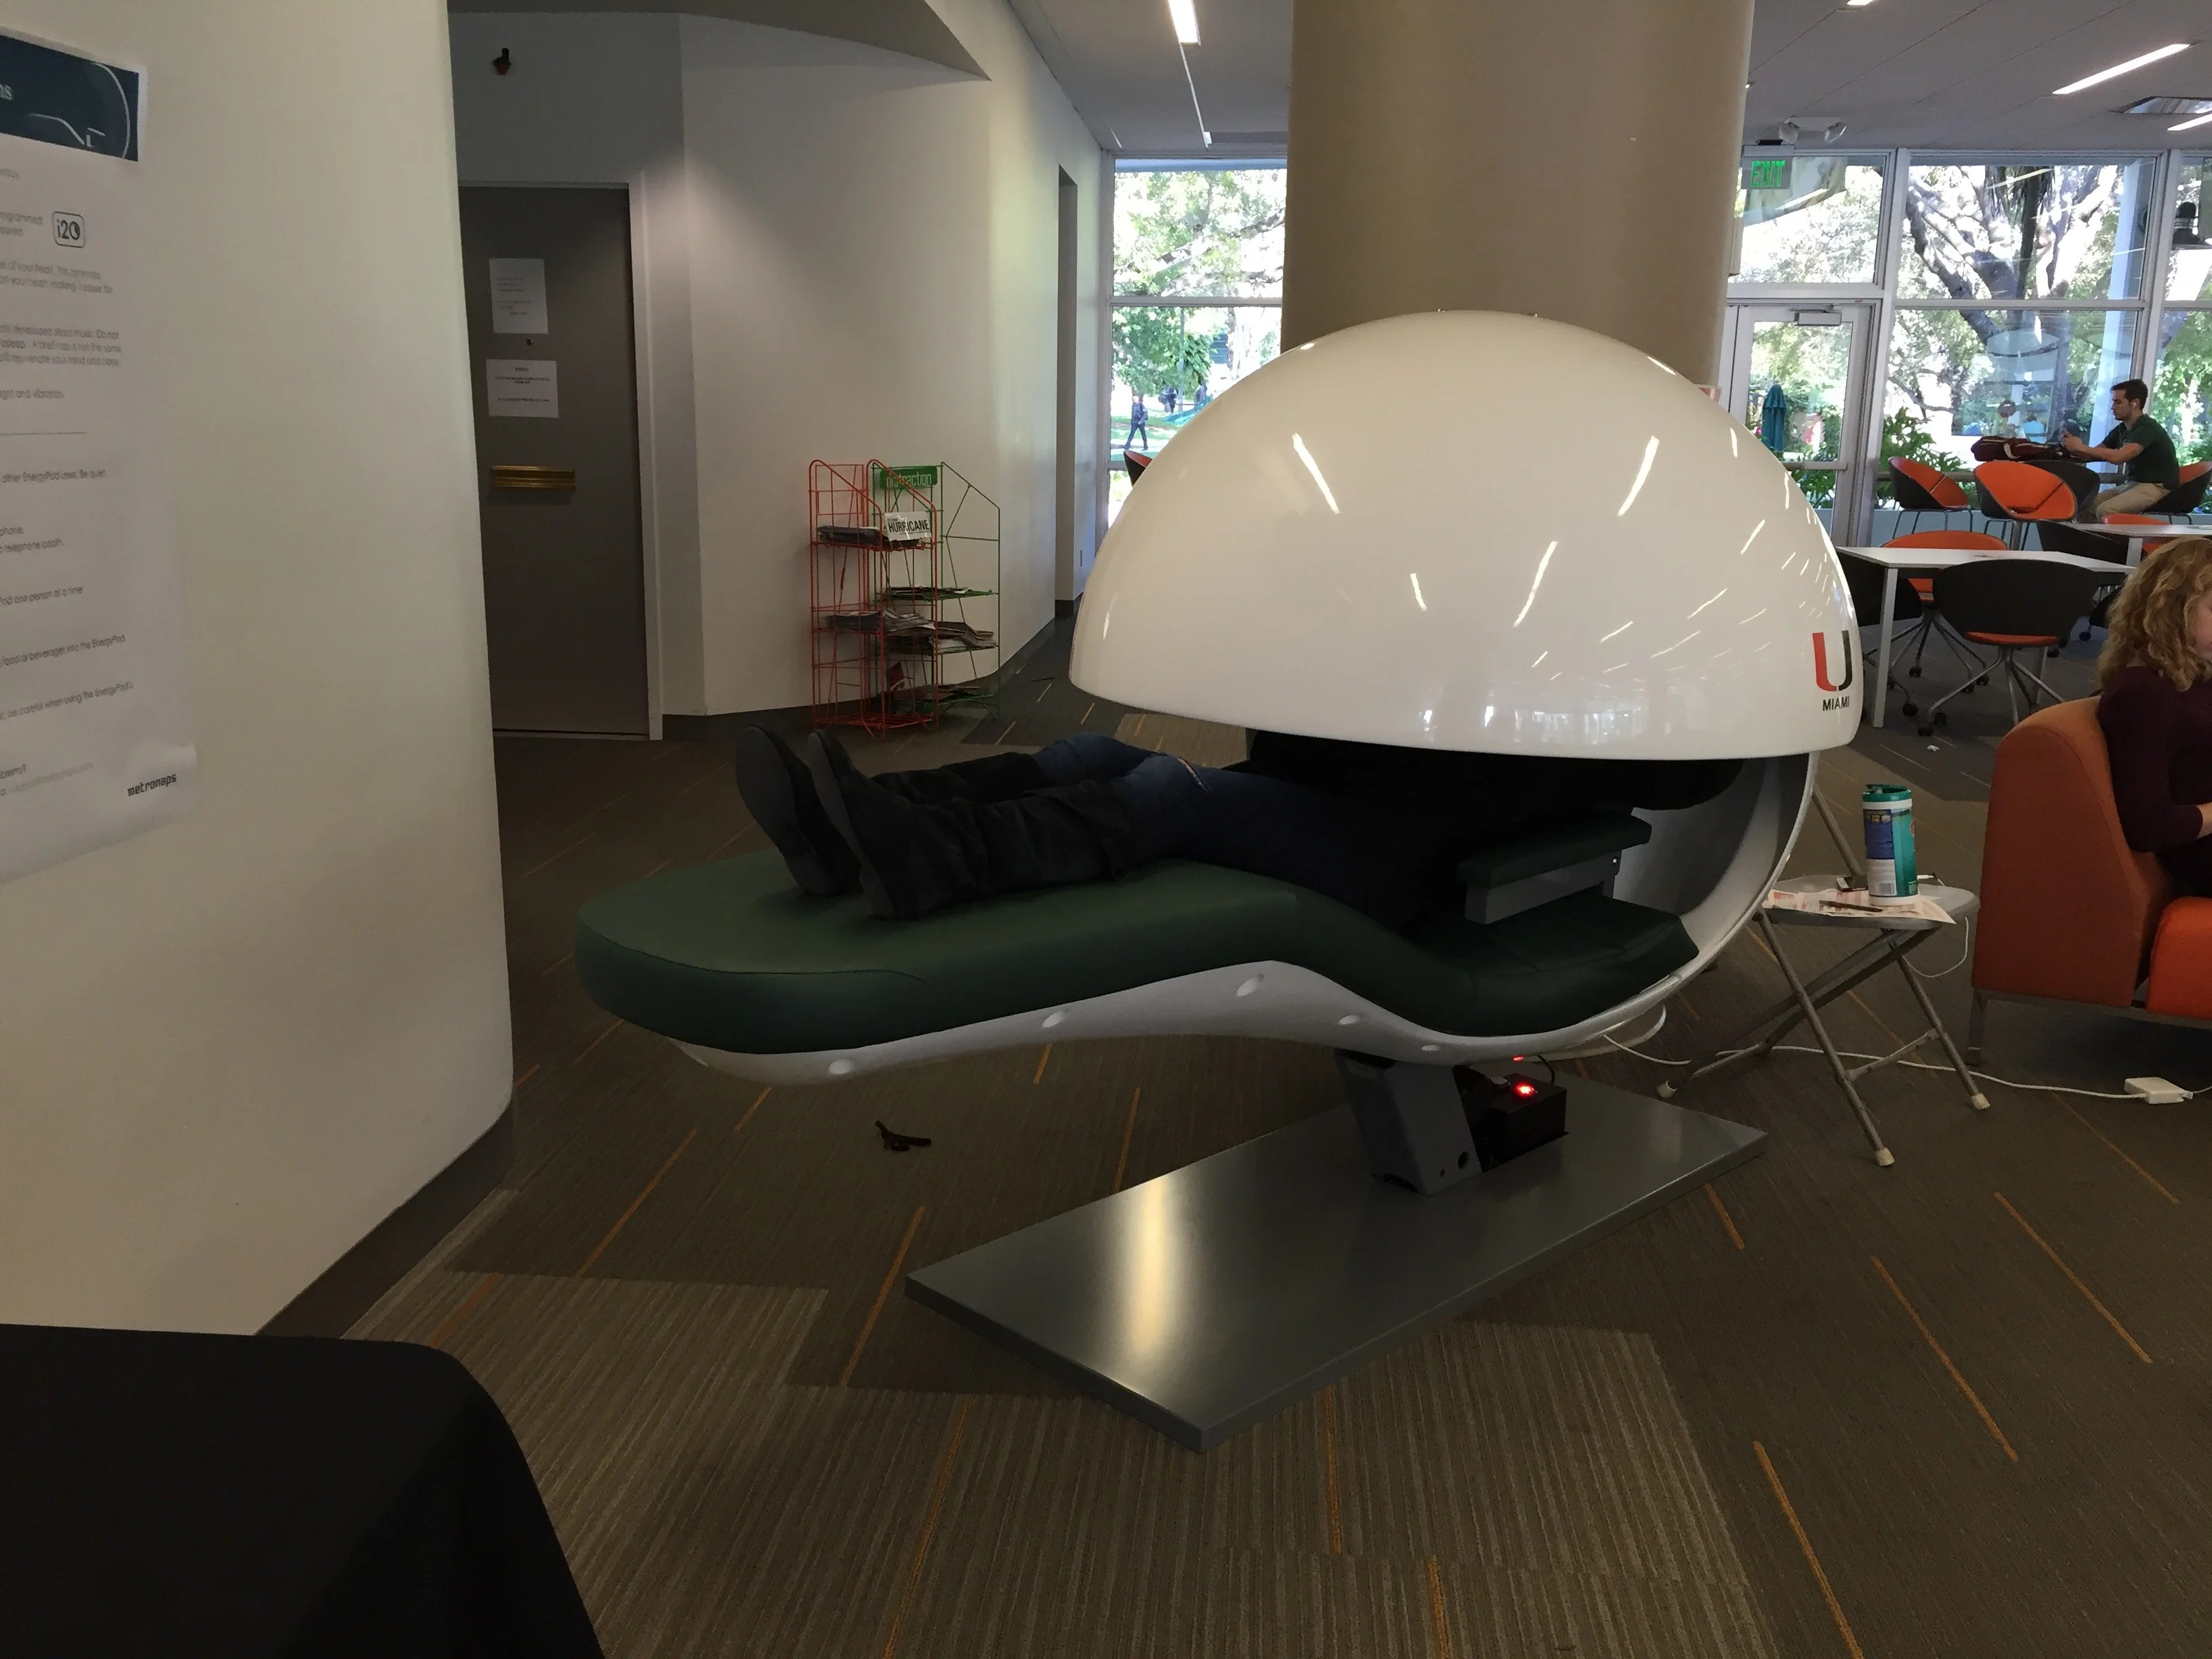 energy pod chair rentals in delaware these napping pods are a waste of our tuition img 8597